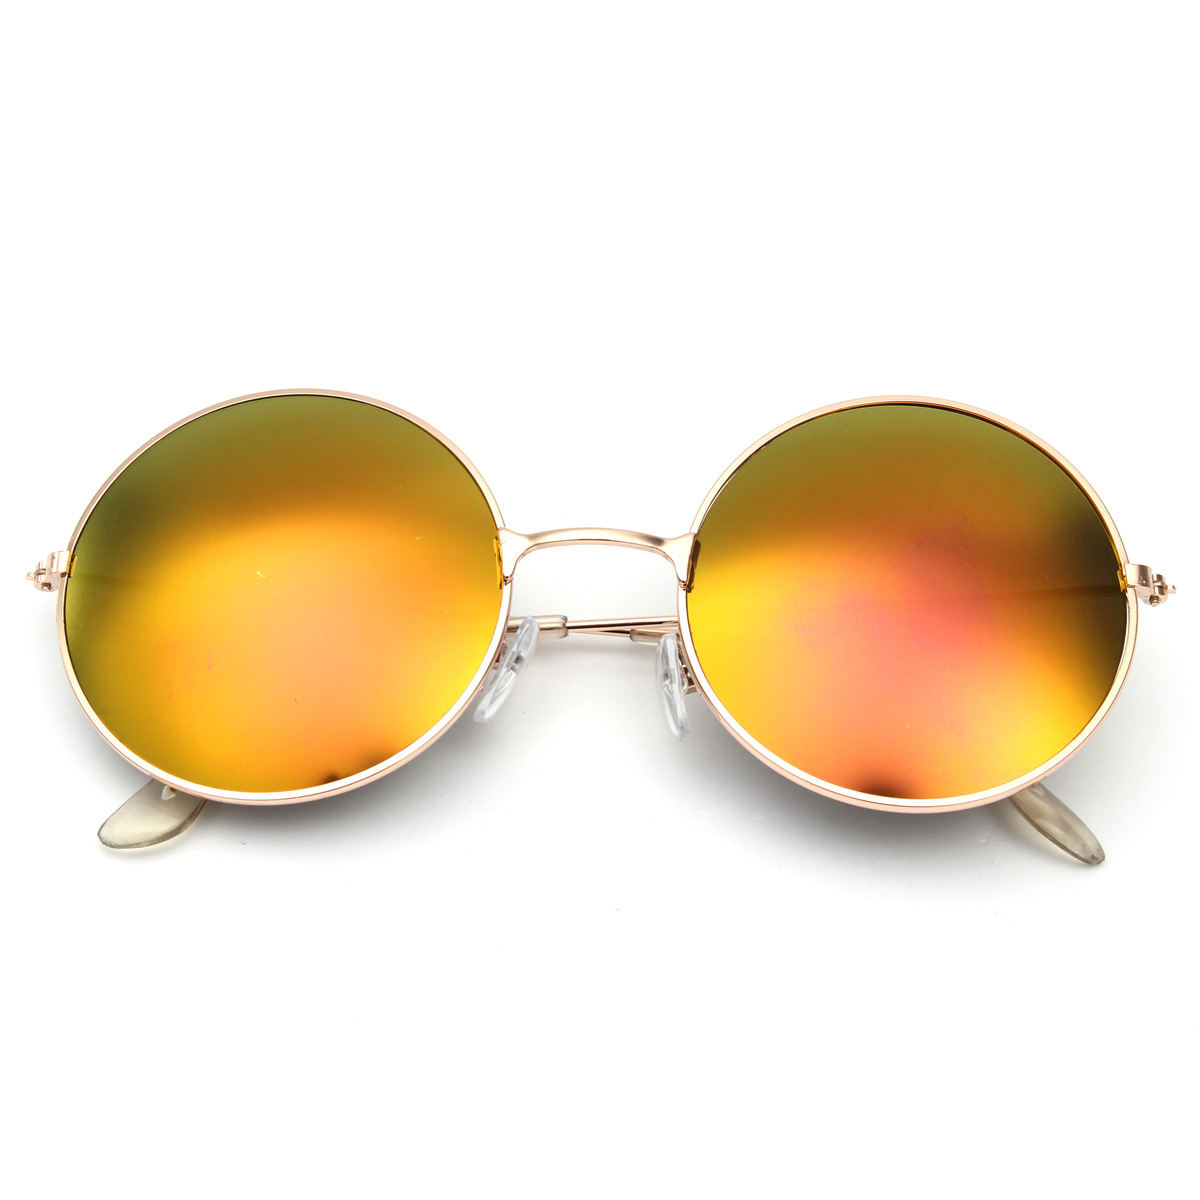 Big Frame Glasses Singapore : Retro Vintage Men Women Big Round Metal Frame Sunglasses ...